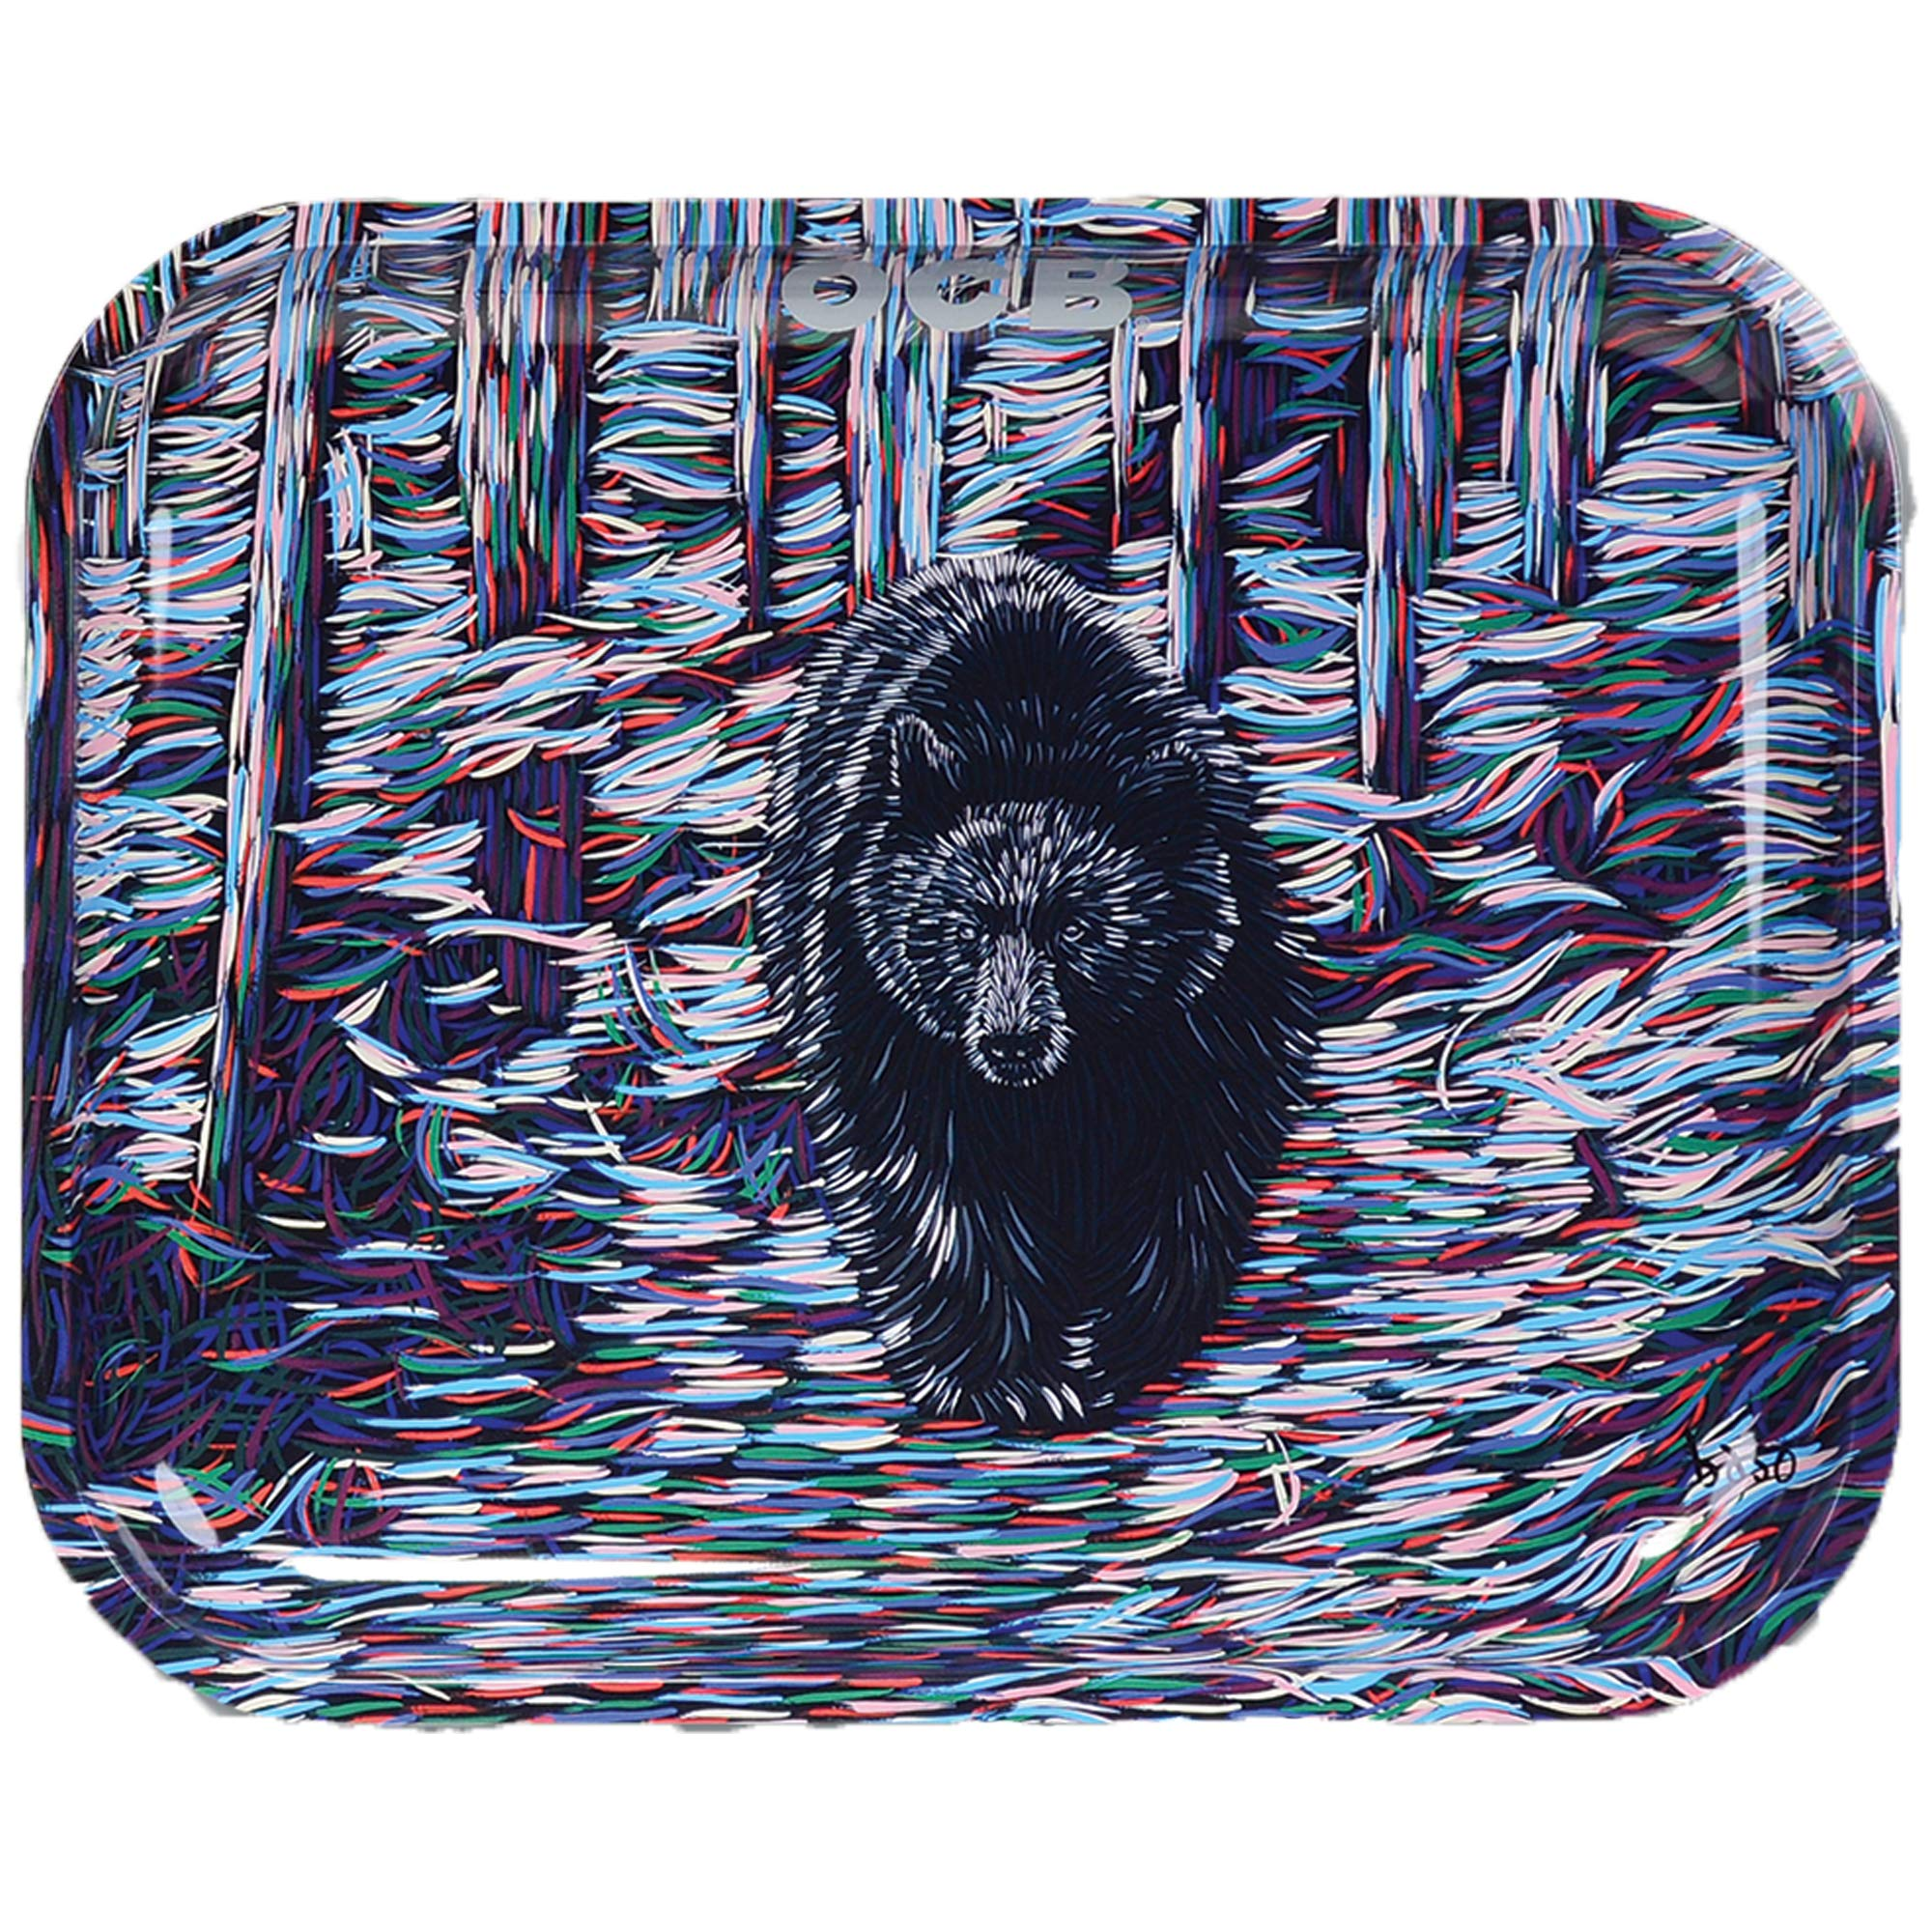 OCB Rolling Tray - Bear - (Large) by OCB